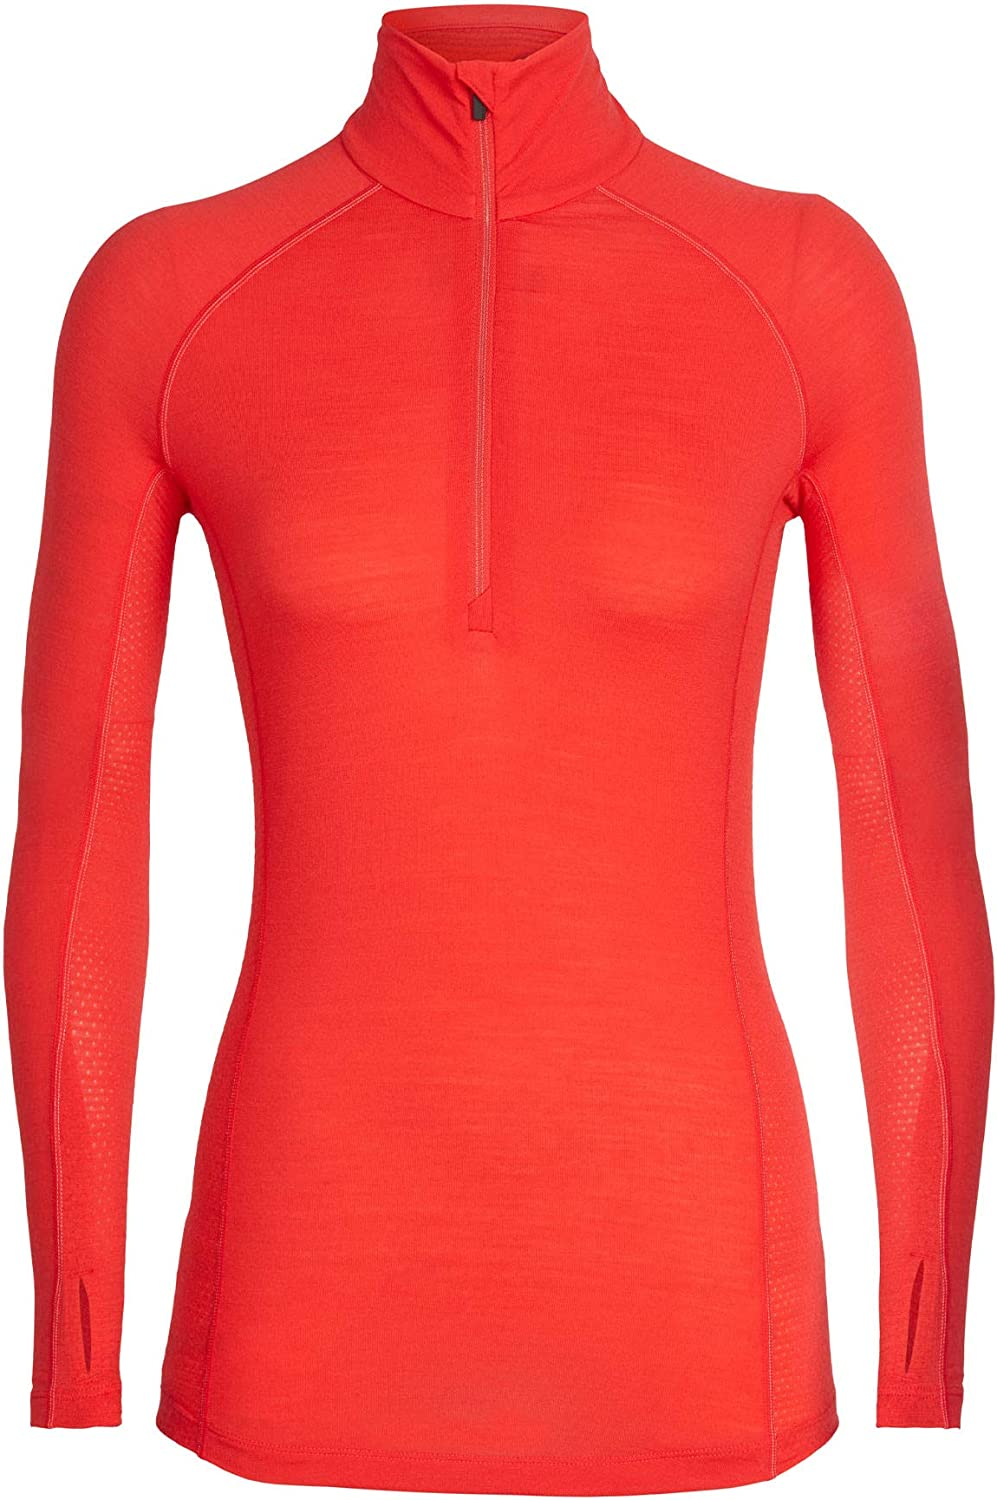 Icebreaker 150 Zone Long Sleeve Half Zip, Womens, Ember Snow, Medium, 104332602M